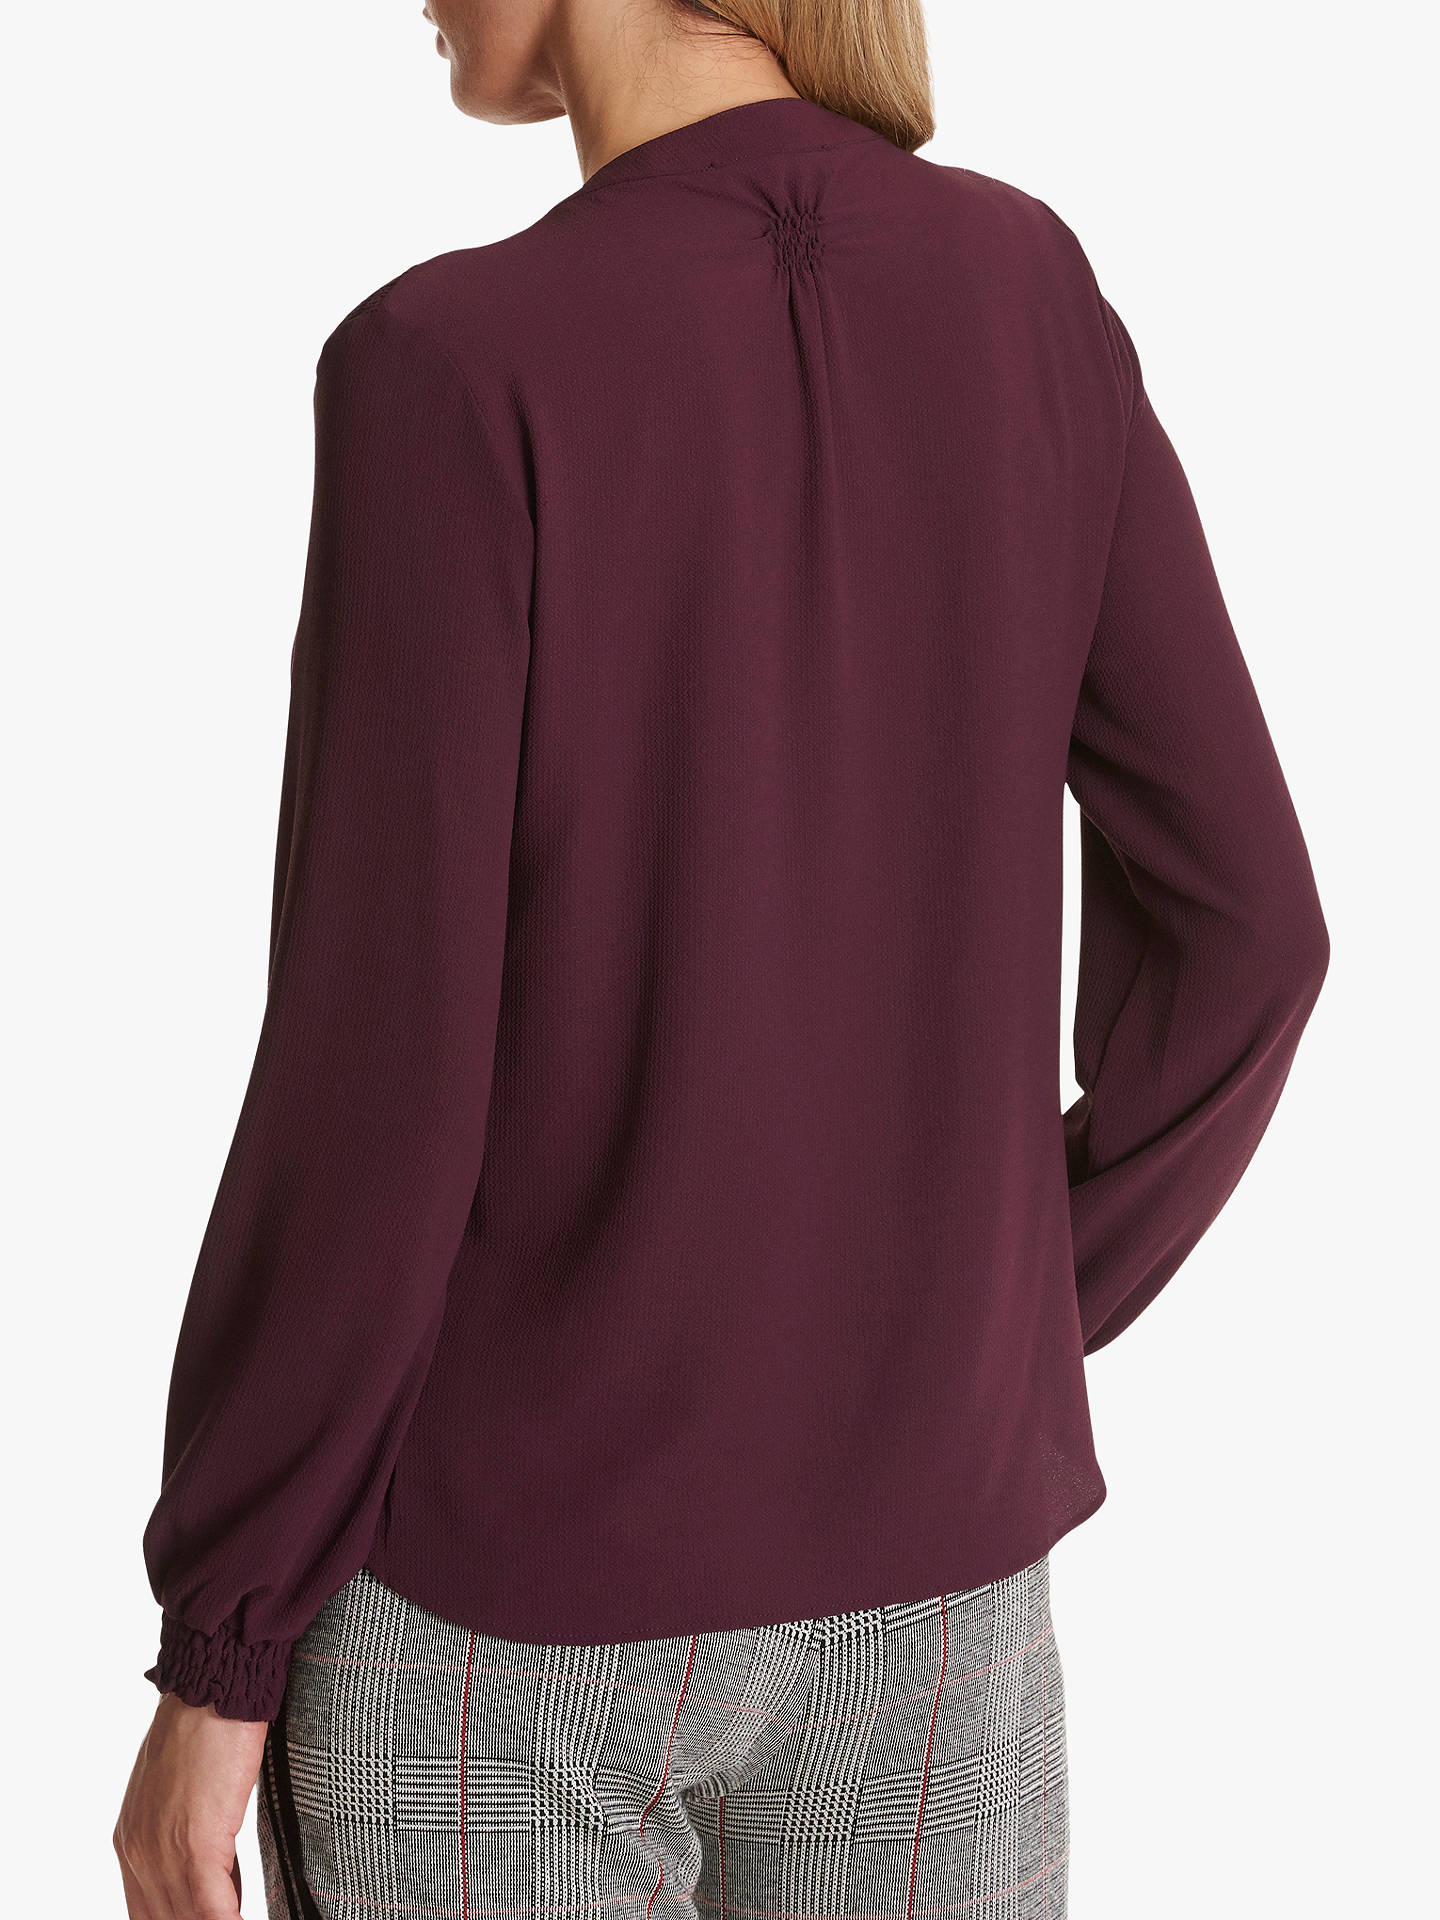 Buy Betty & Co. Crepe Blouse, Wine Tasting, 10 Online at johnlewis.com